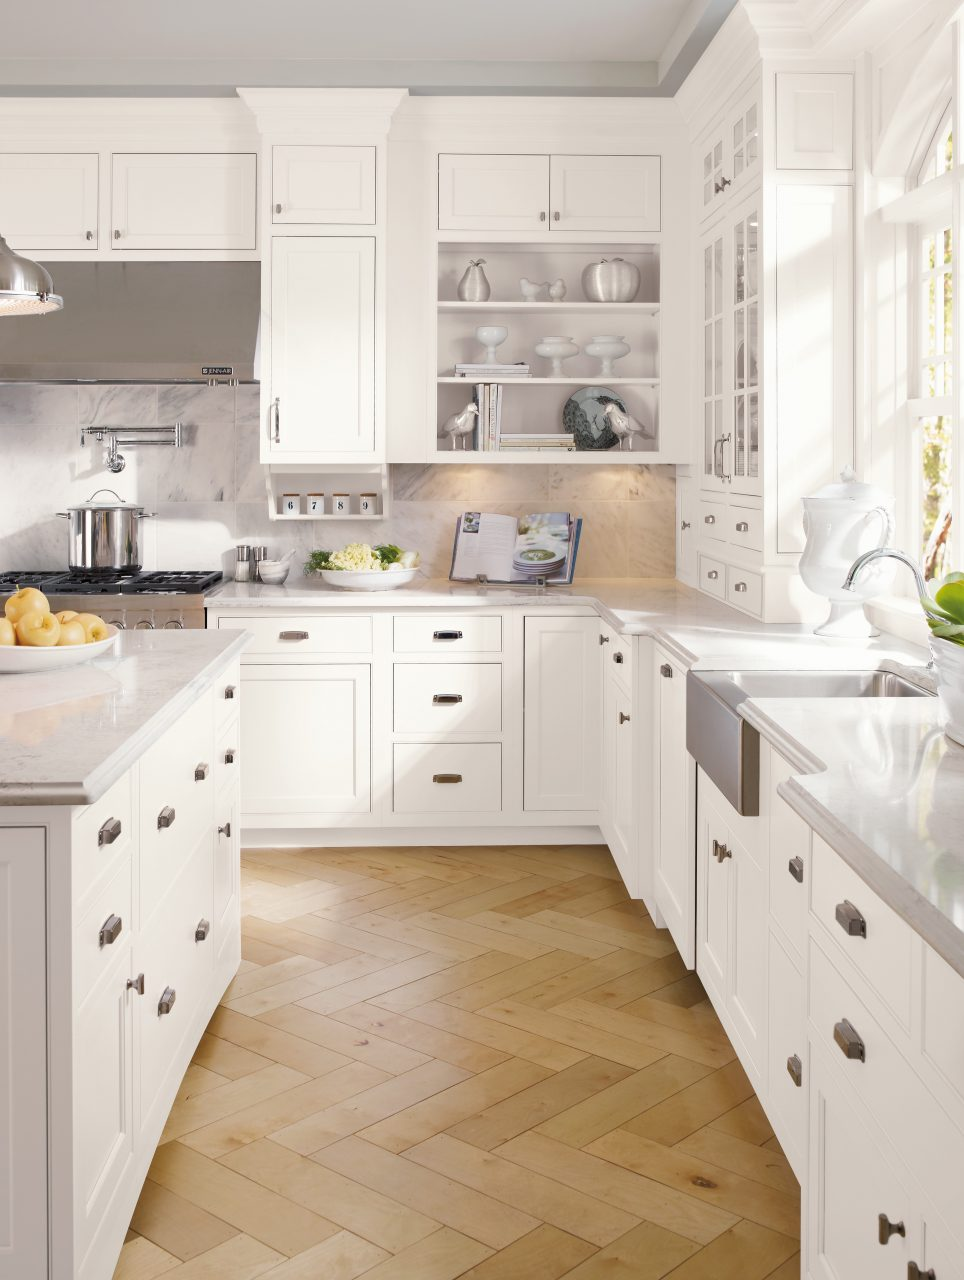 white kitchen cabinets kitchen cabinets nj White Custom Kitchen Cabinets in New Jersey